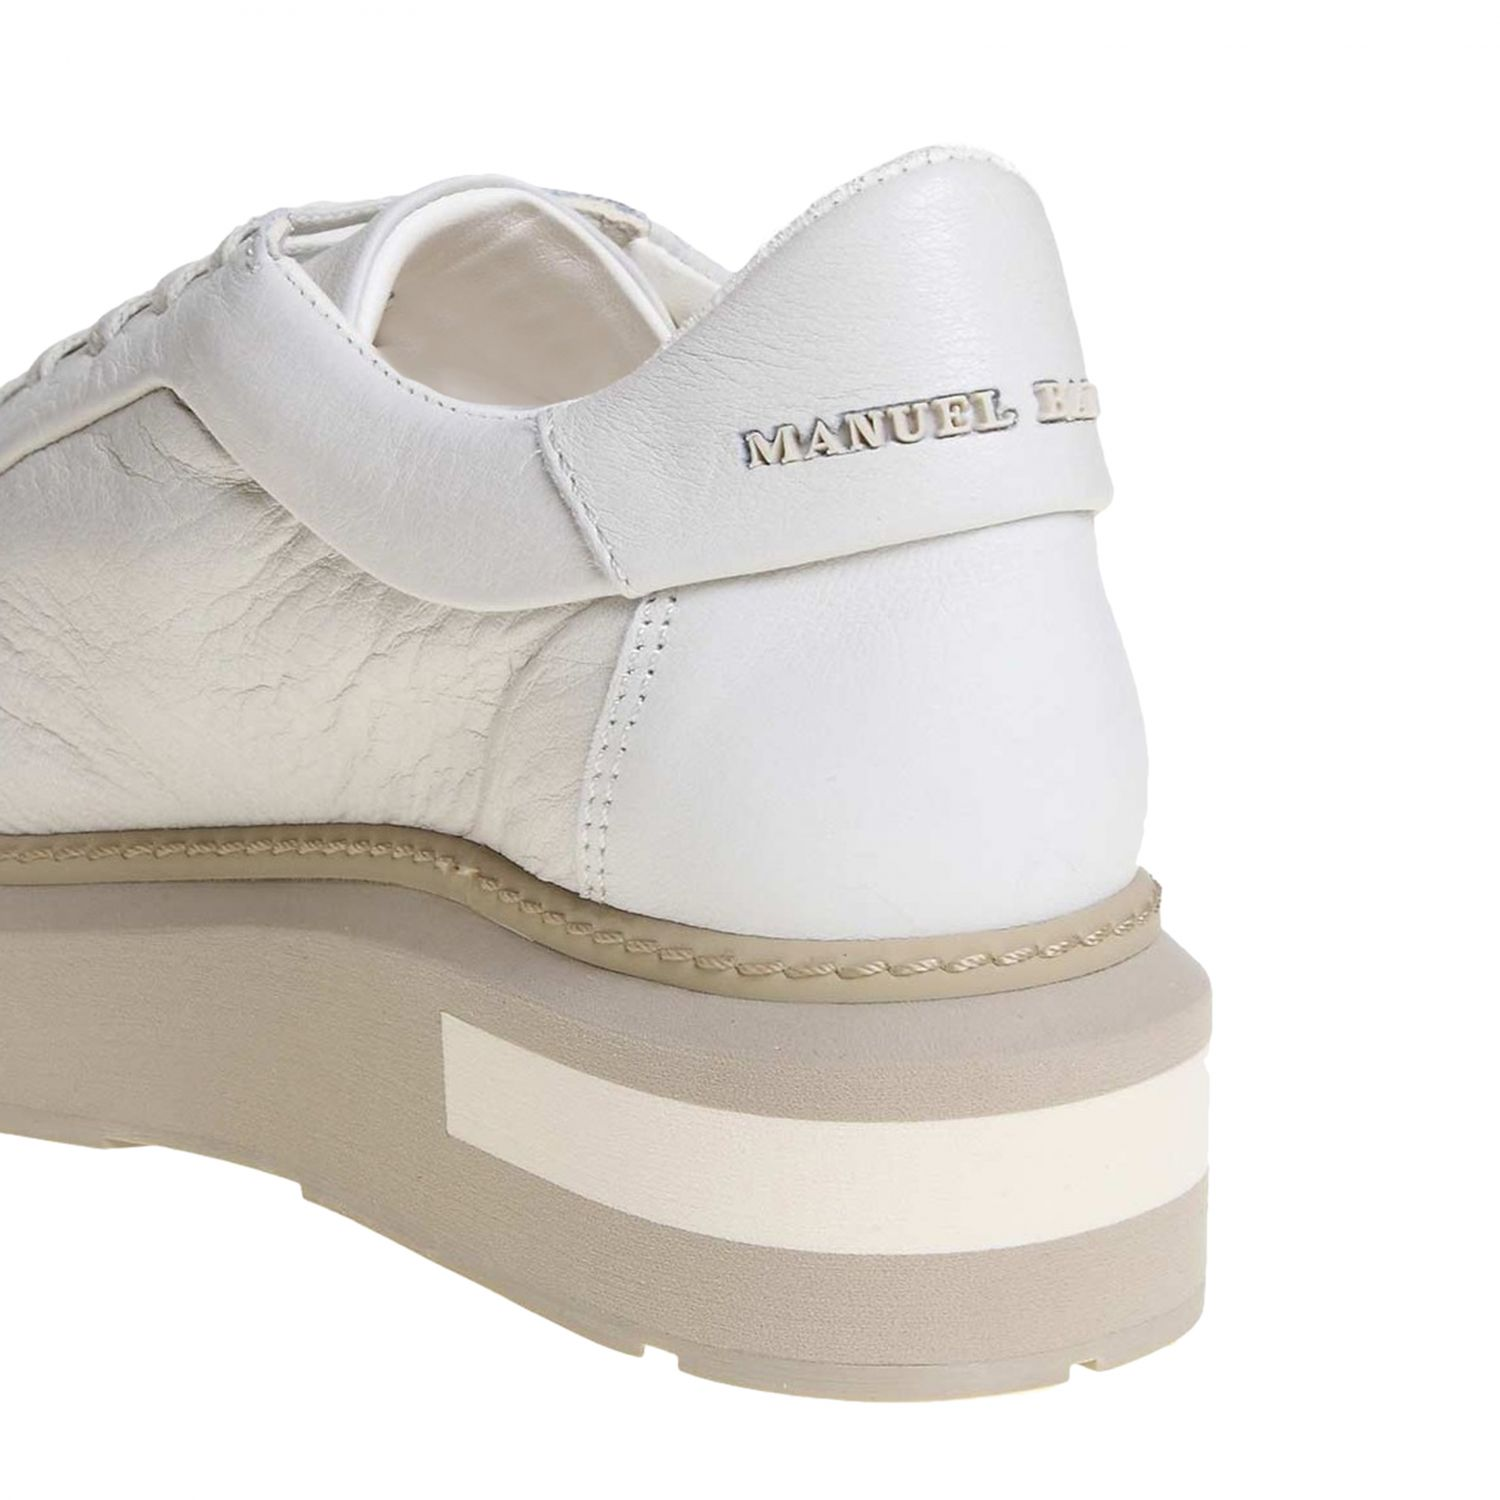 Sneakers Manuel Barcelò: Sneakers women Manuel BarcelÒ white 5